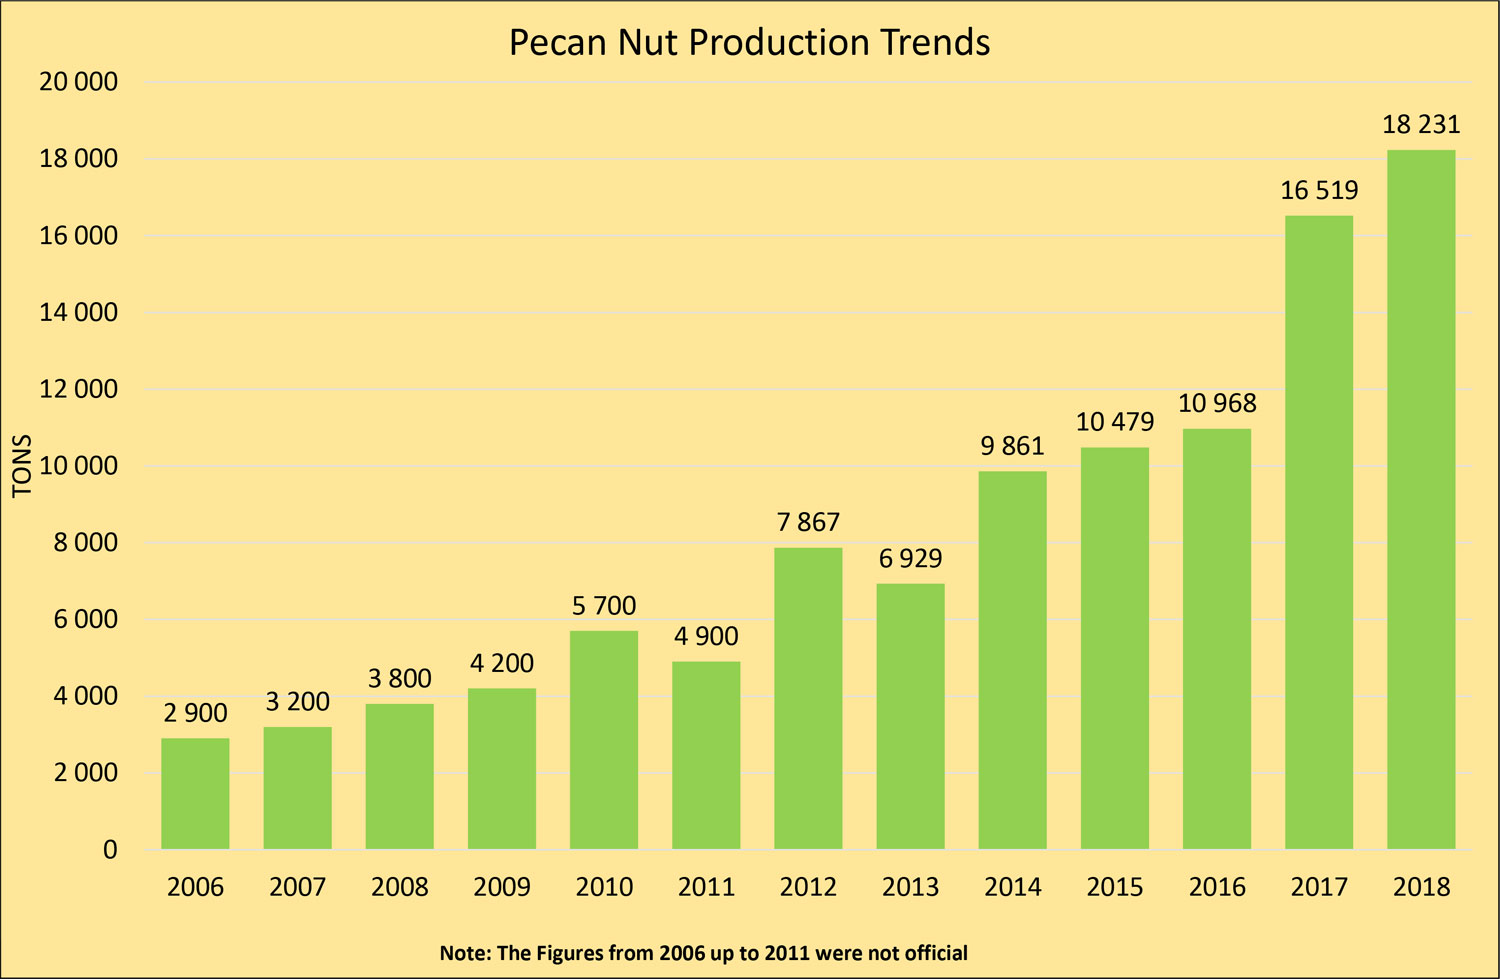 Pecan Nut Production 2018